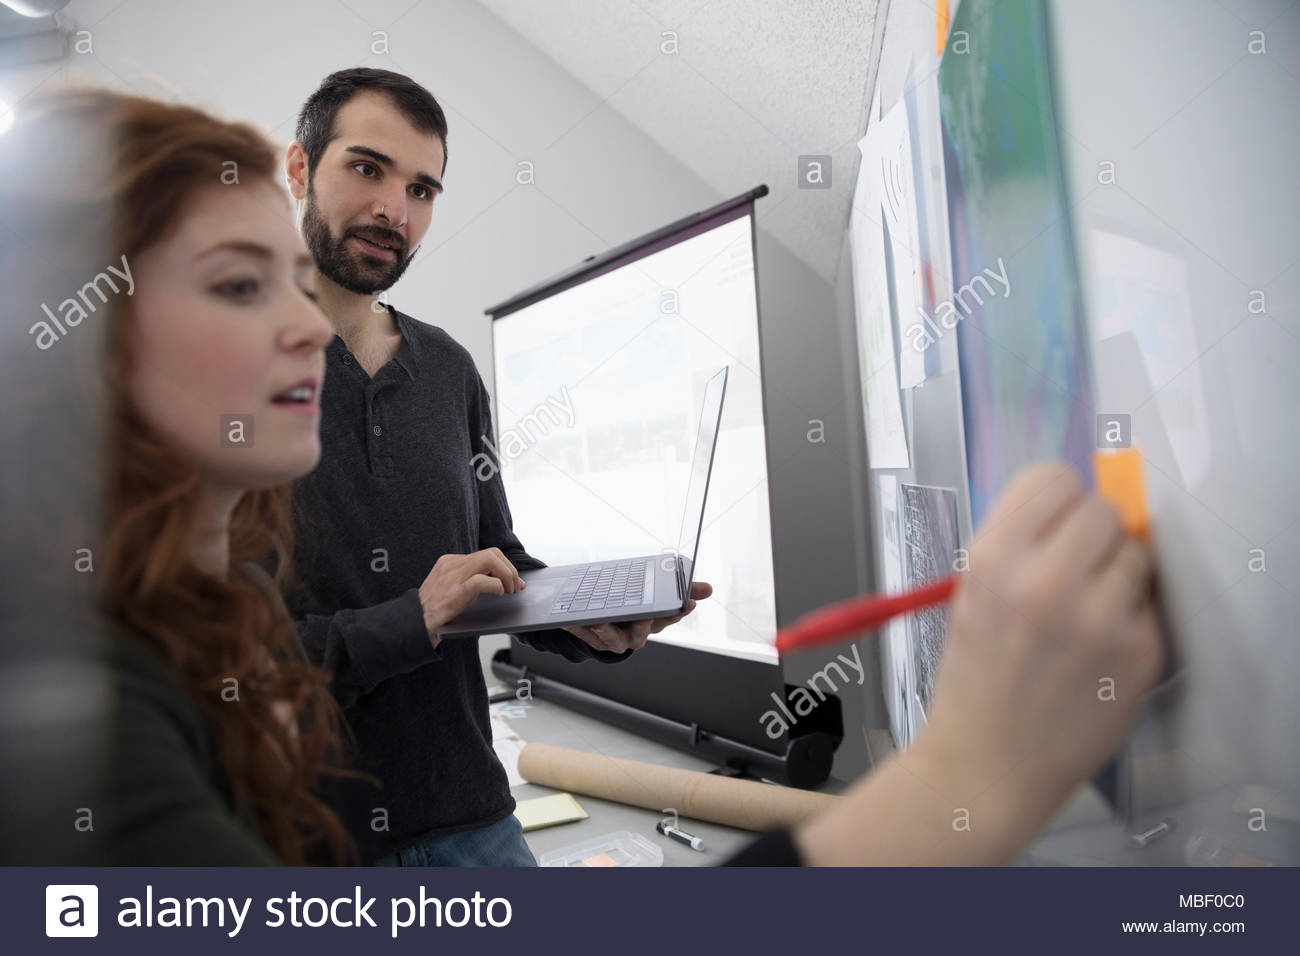 Creative designers editing poster on whiteboard - Stock Image